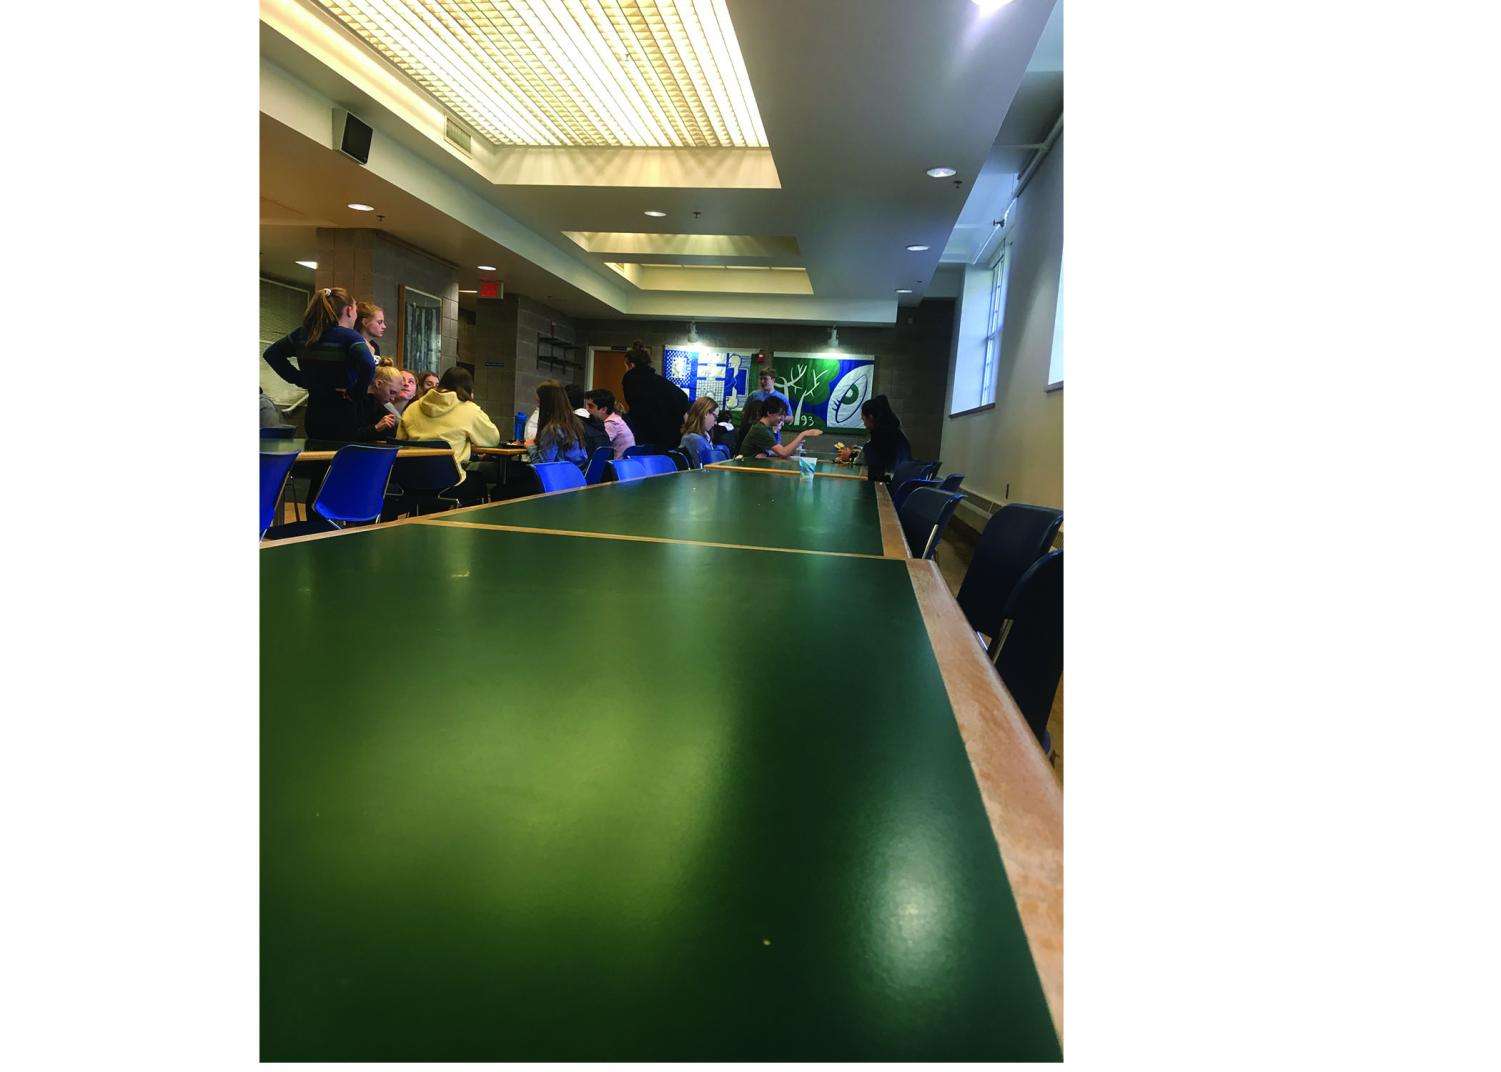 Many seats are left open during a second lunch. The lunch- room is usually quiet and spacious during this block.